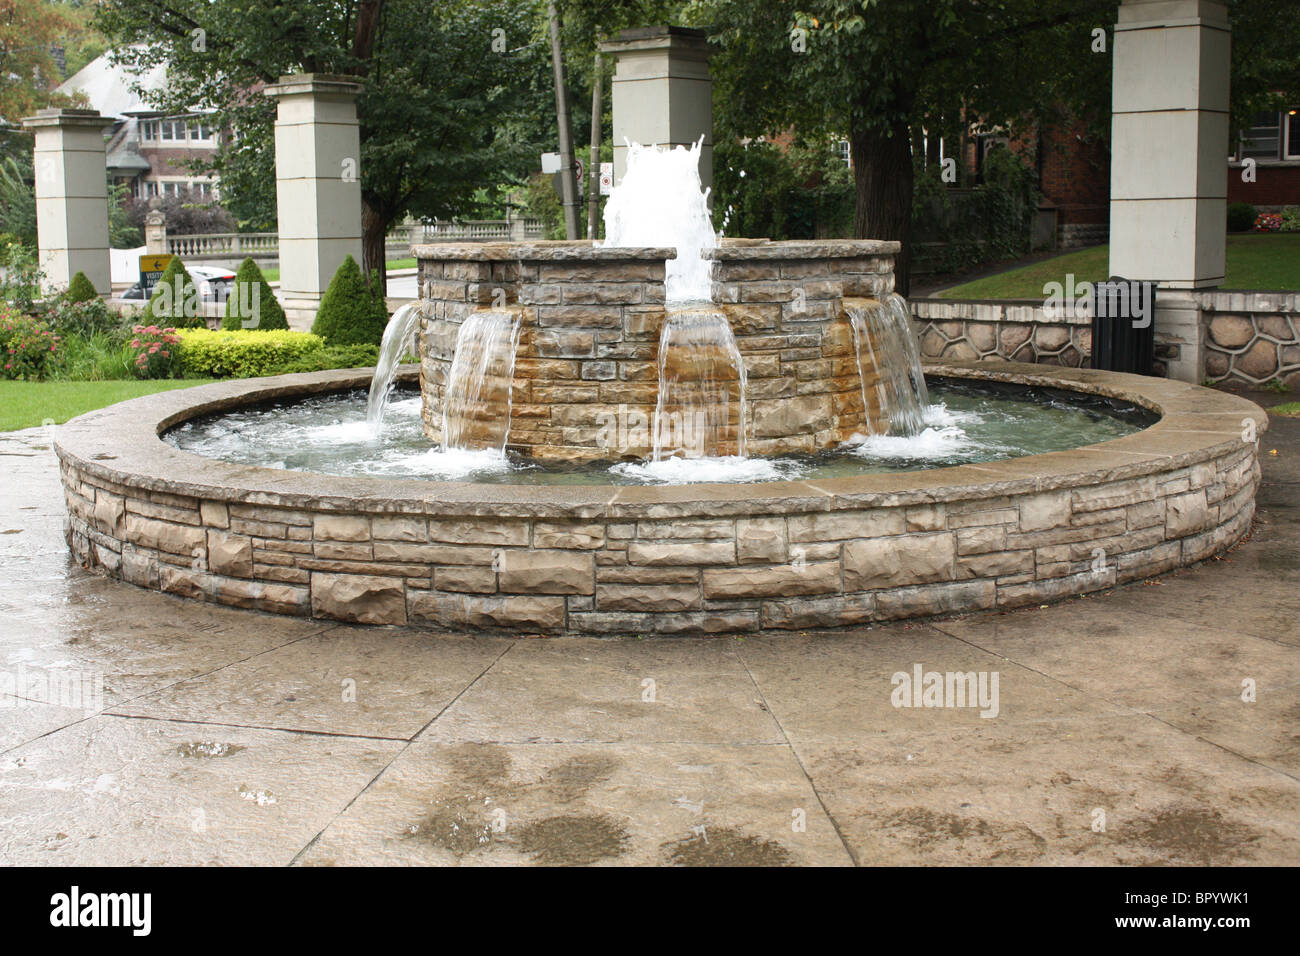 Beau Stone Water Fountain Outdoor Summer